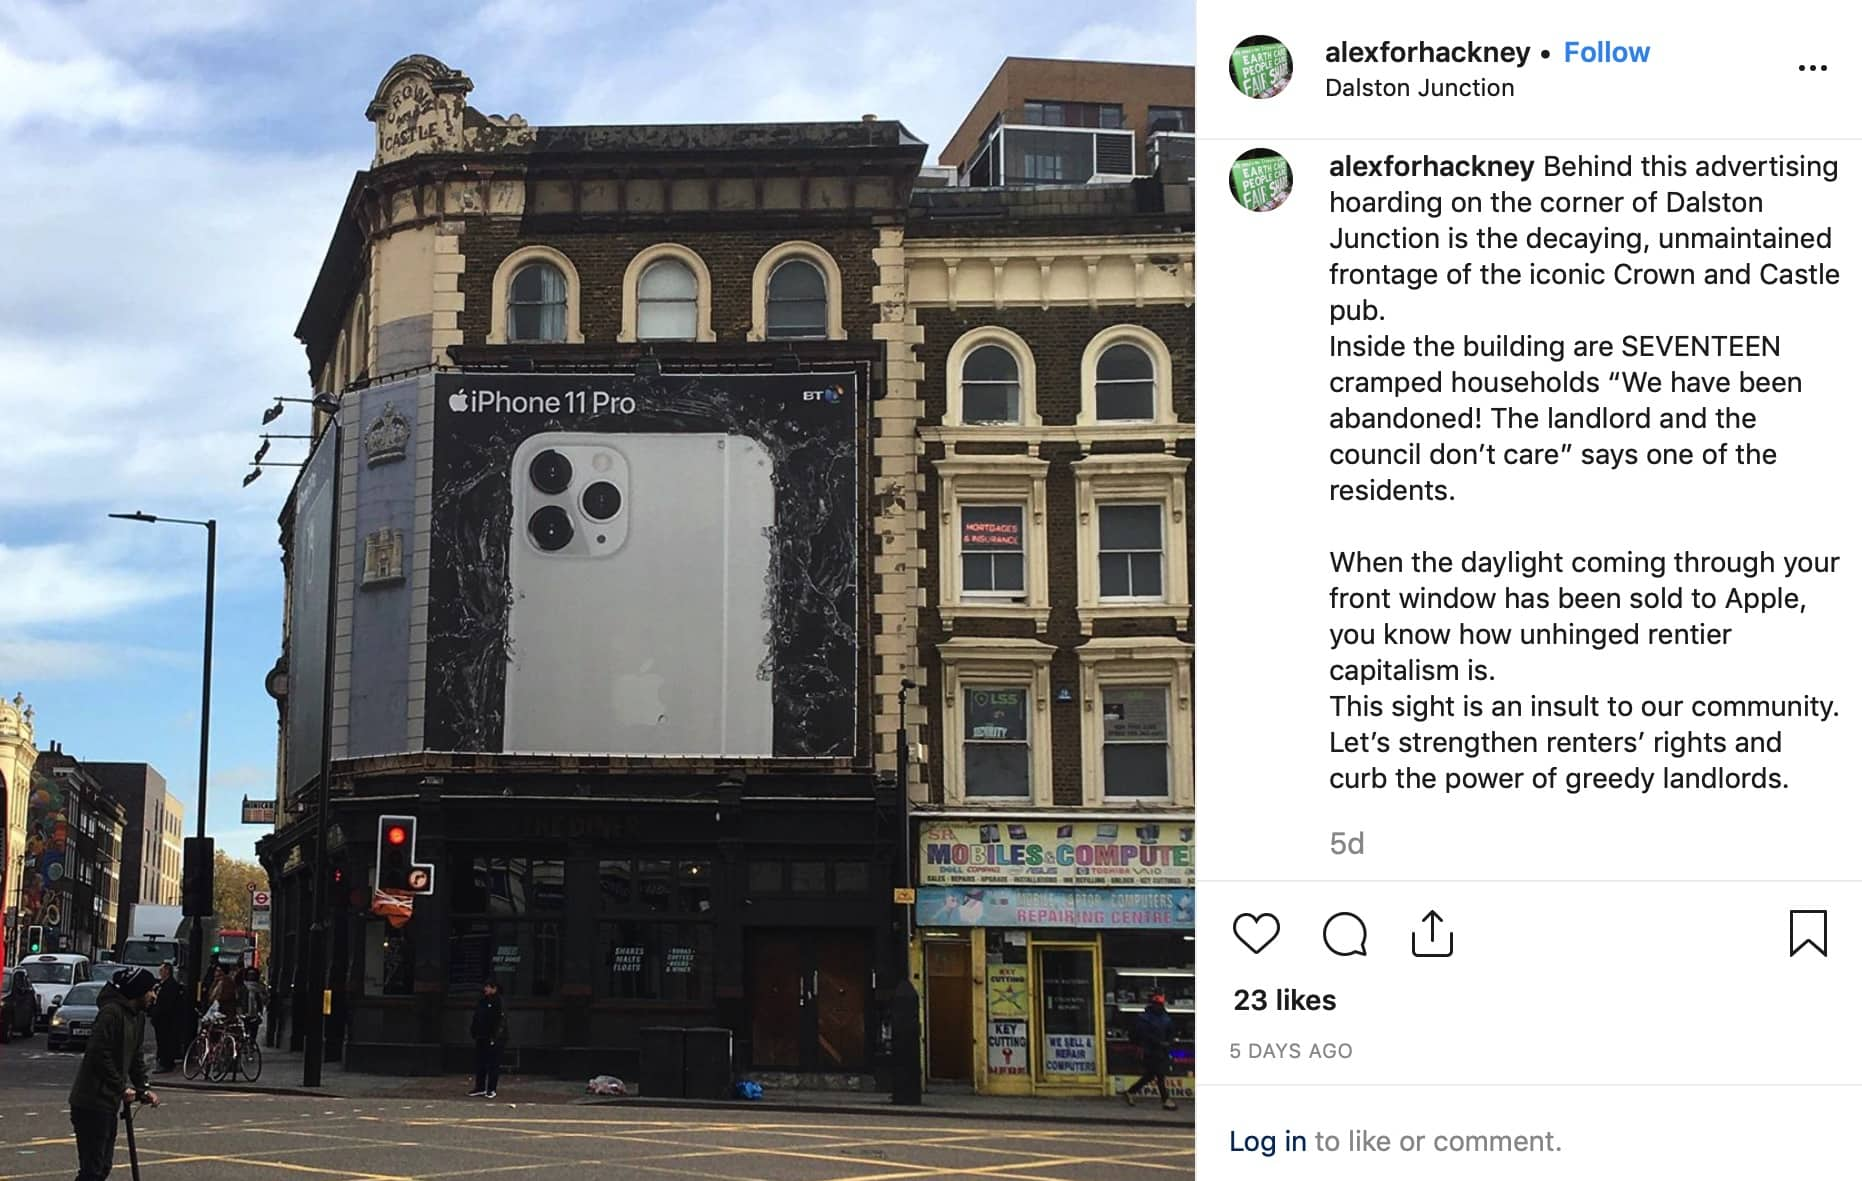 Controversial light-blocking iPhone billboard removed from window